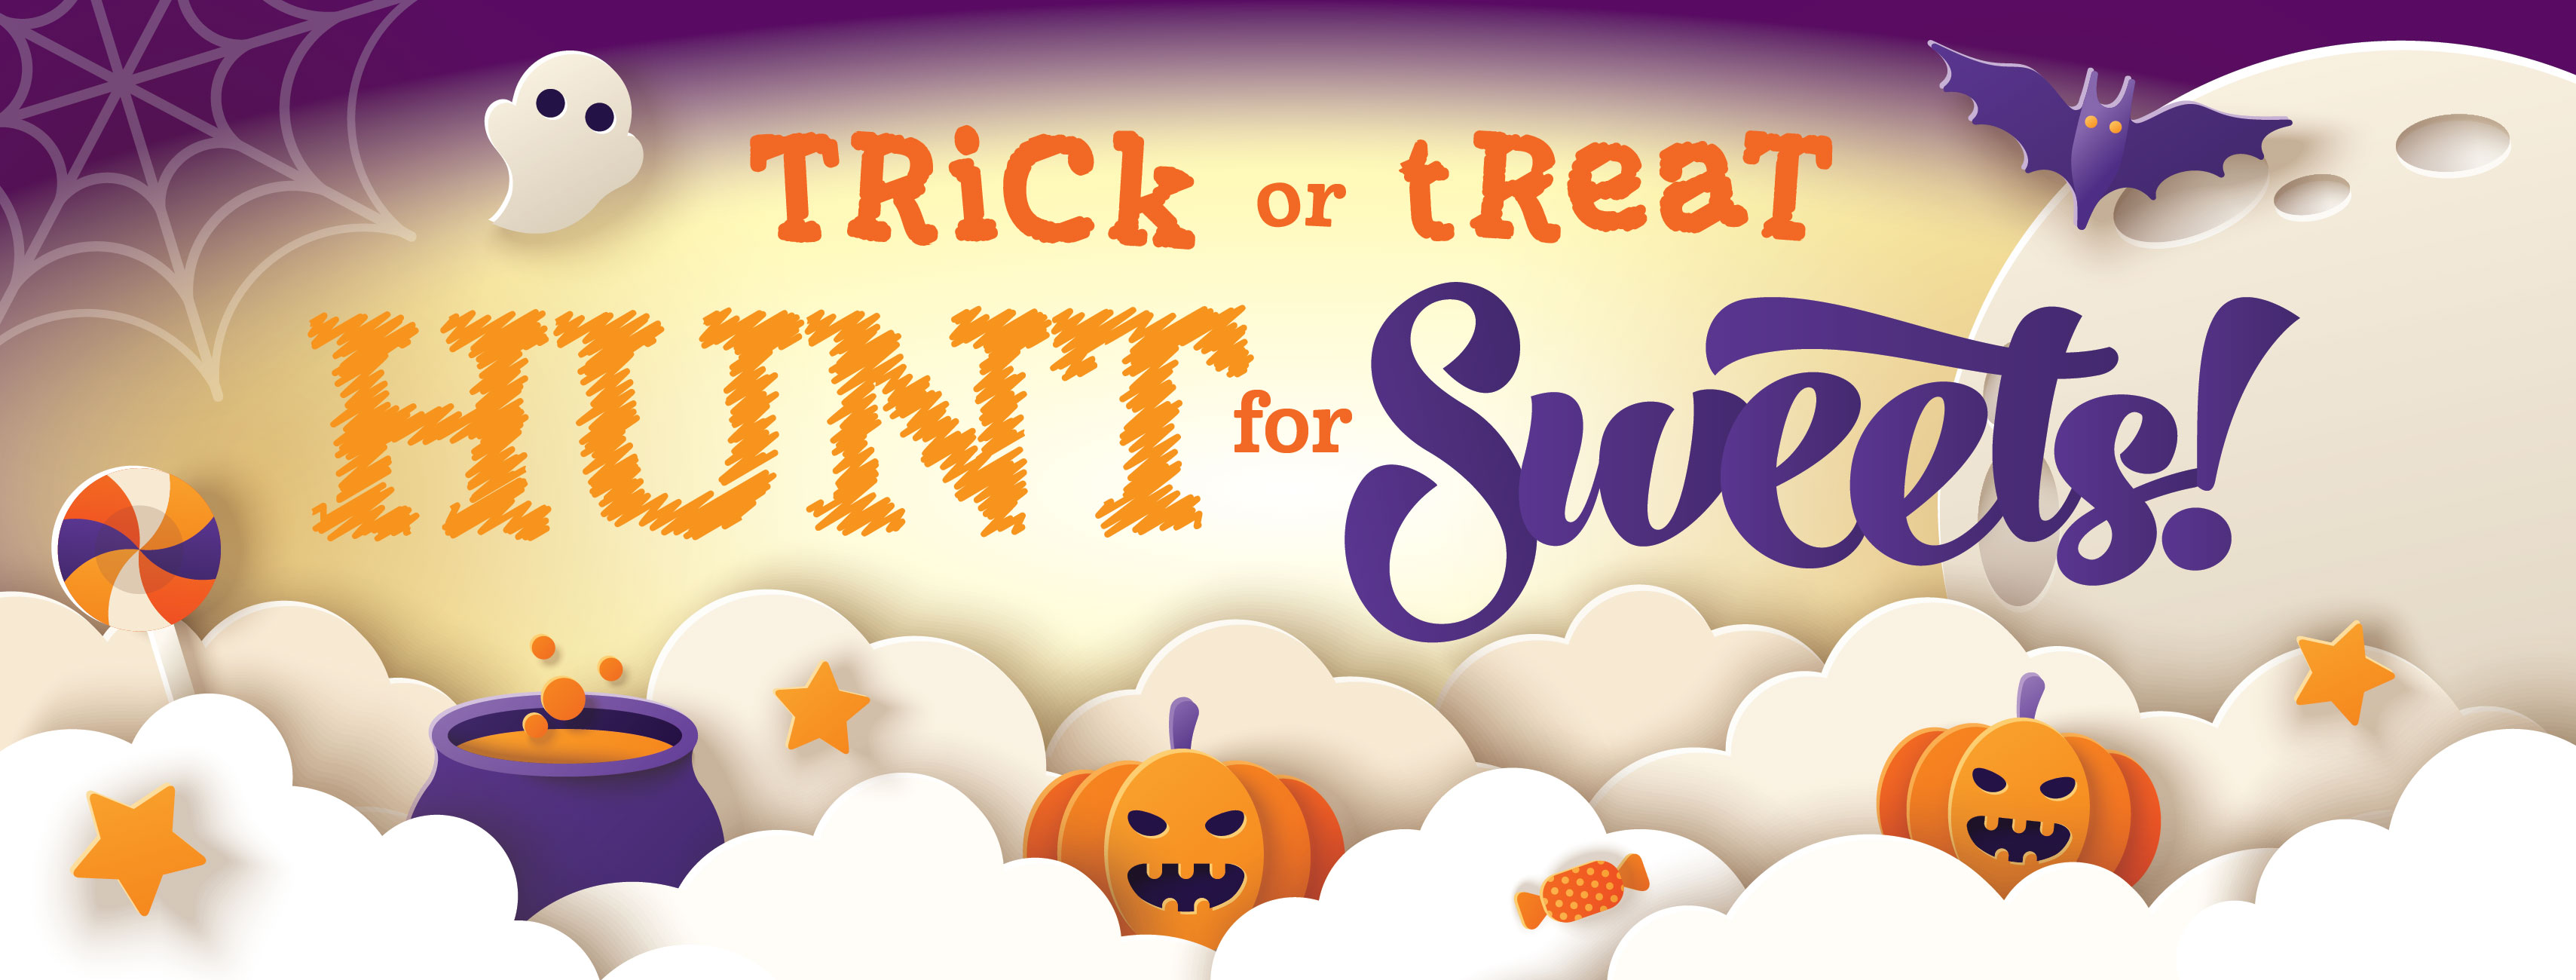 TrickOrTreatHuntForSweets FBCover 01